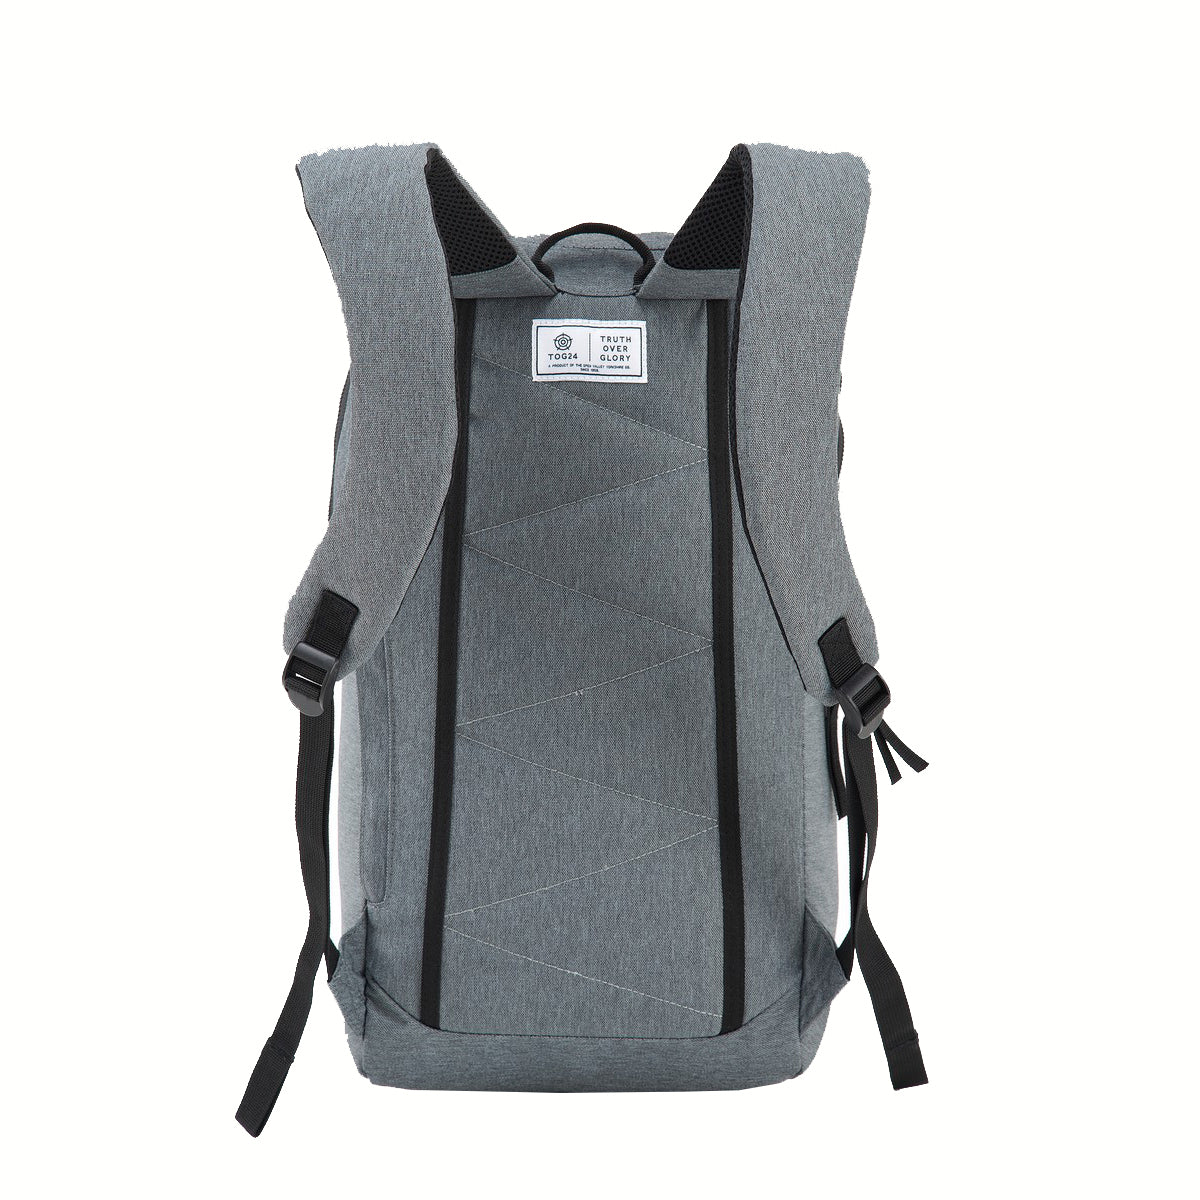 Lendal 20L Backpack - Dark Grey Marl image 4